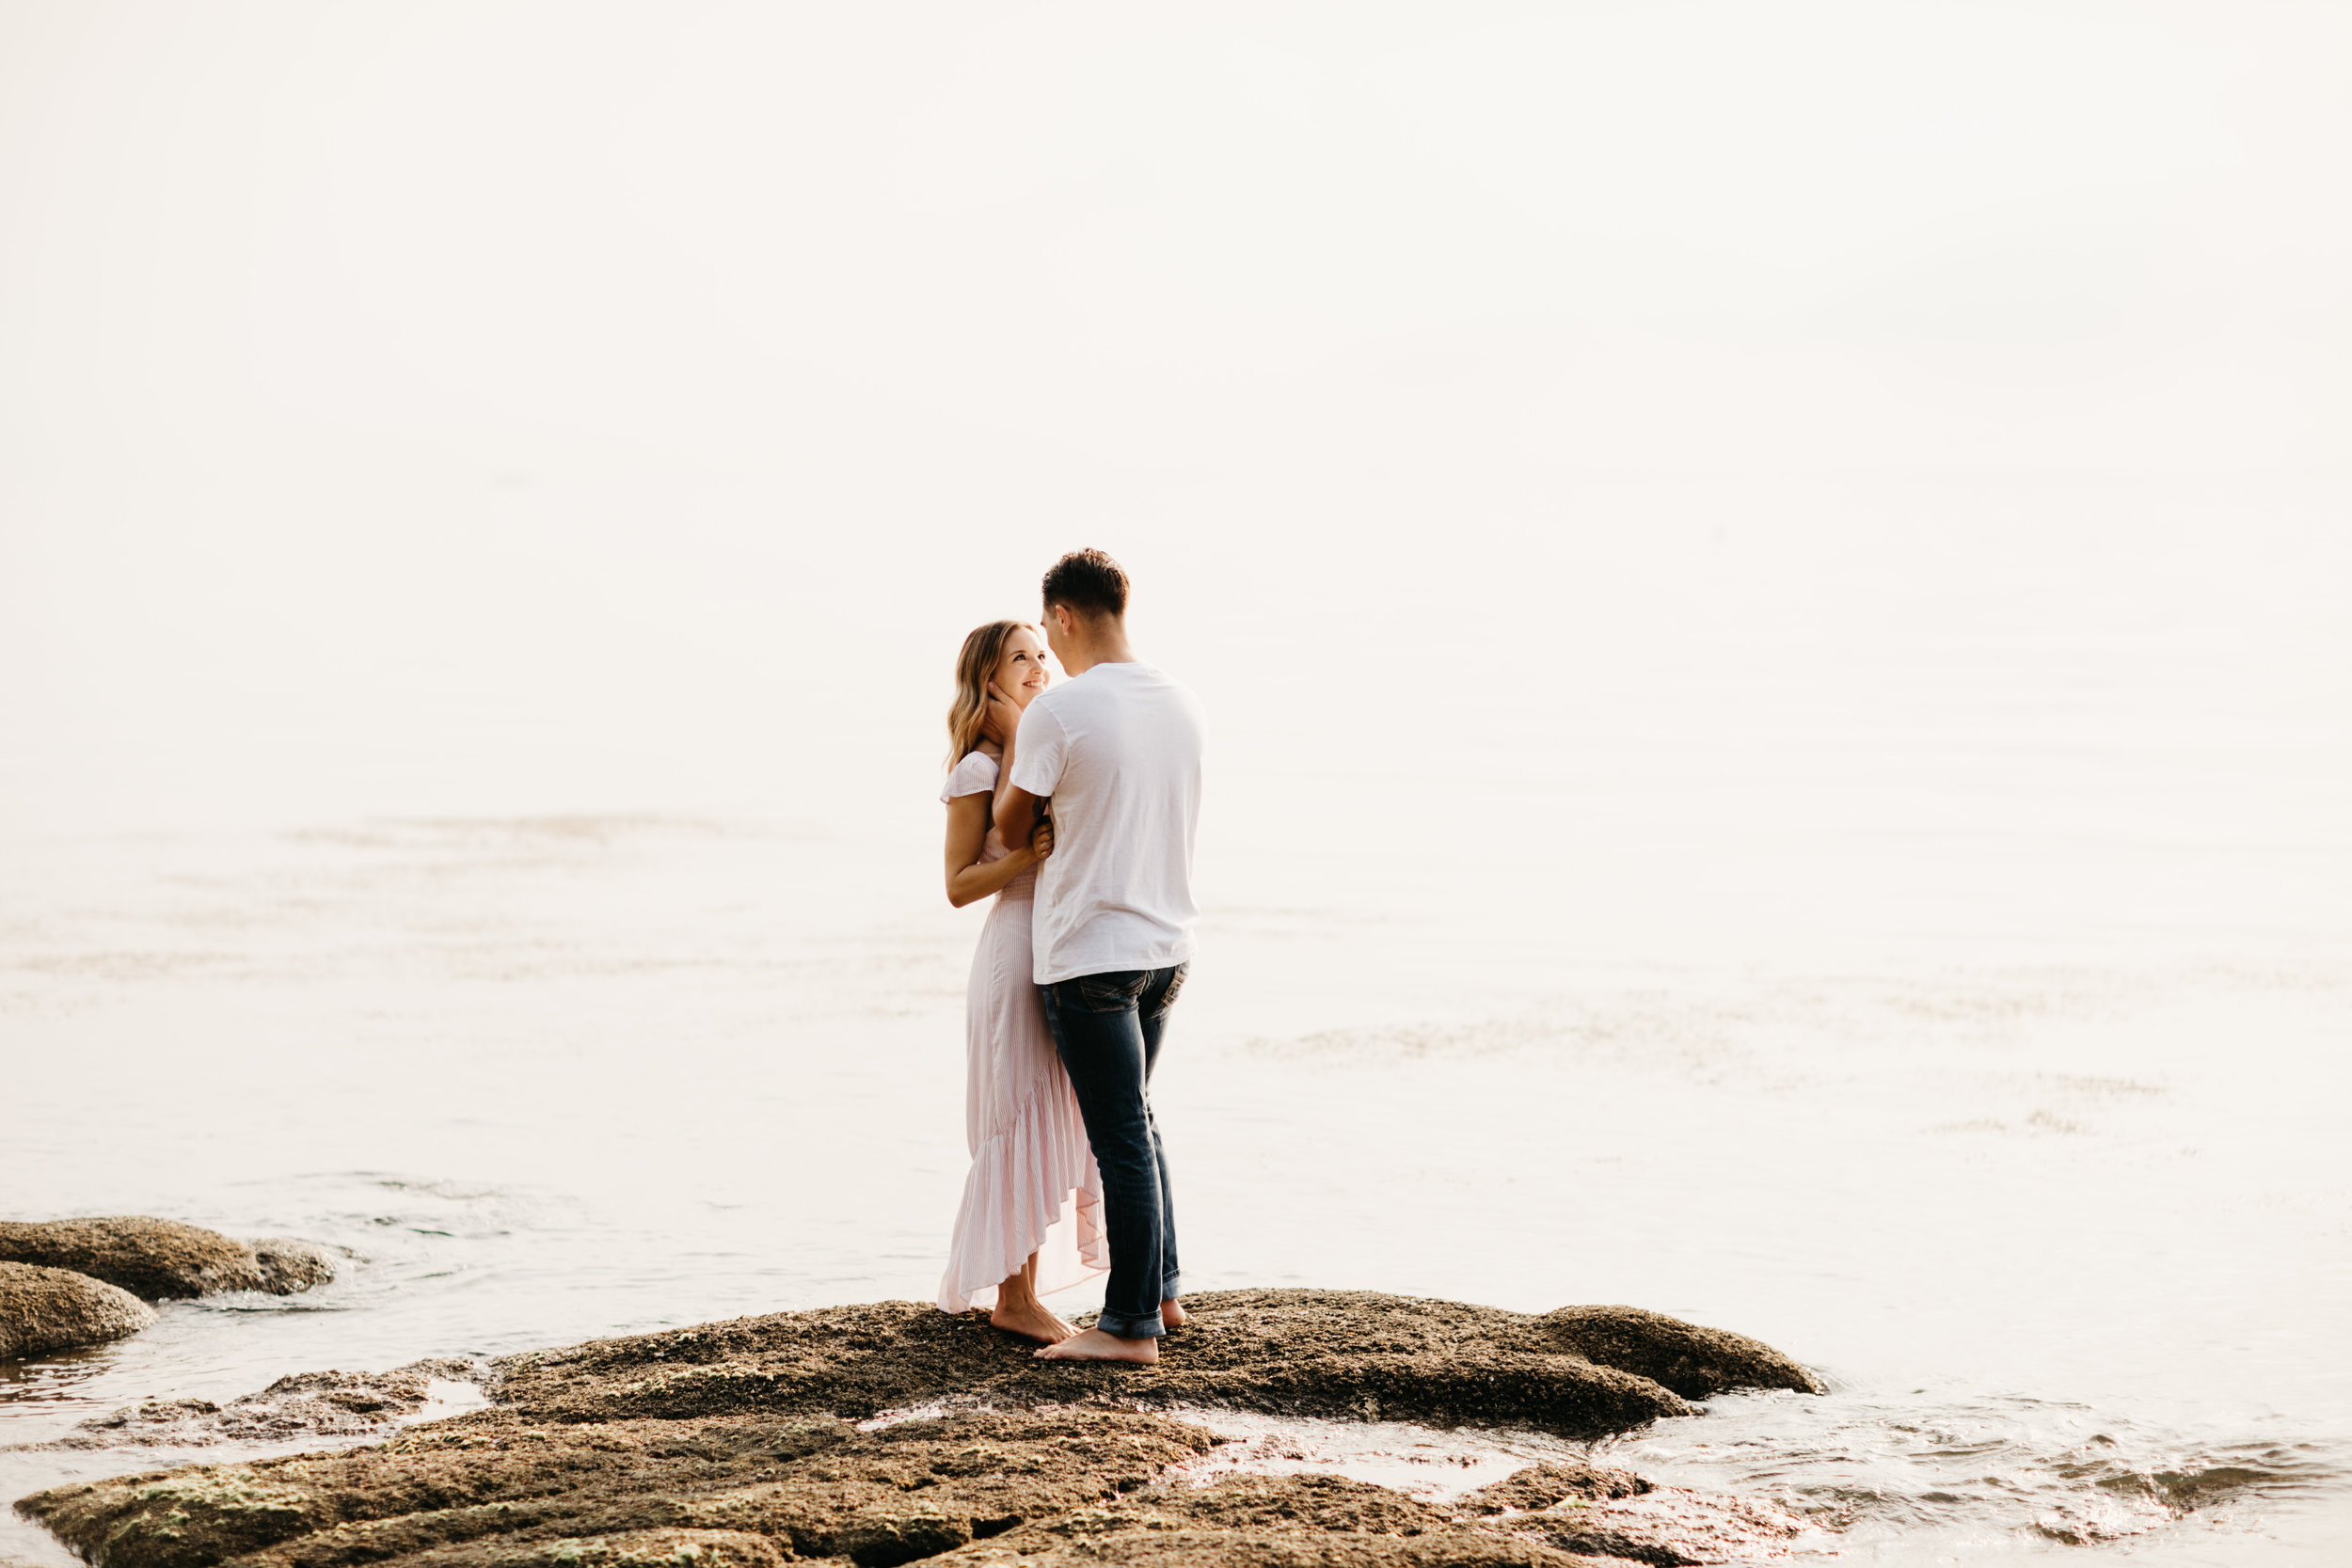 beach_anniversary_session_pictures_by_samantha_look-28.jpg